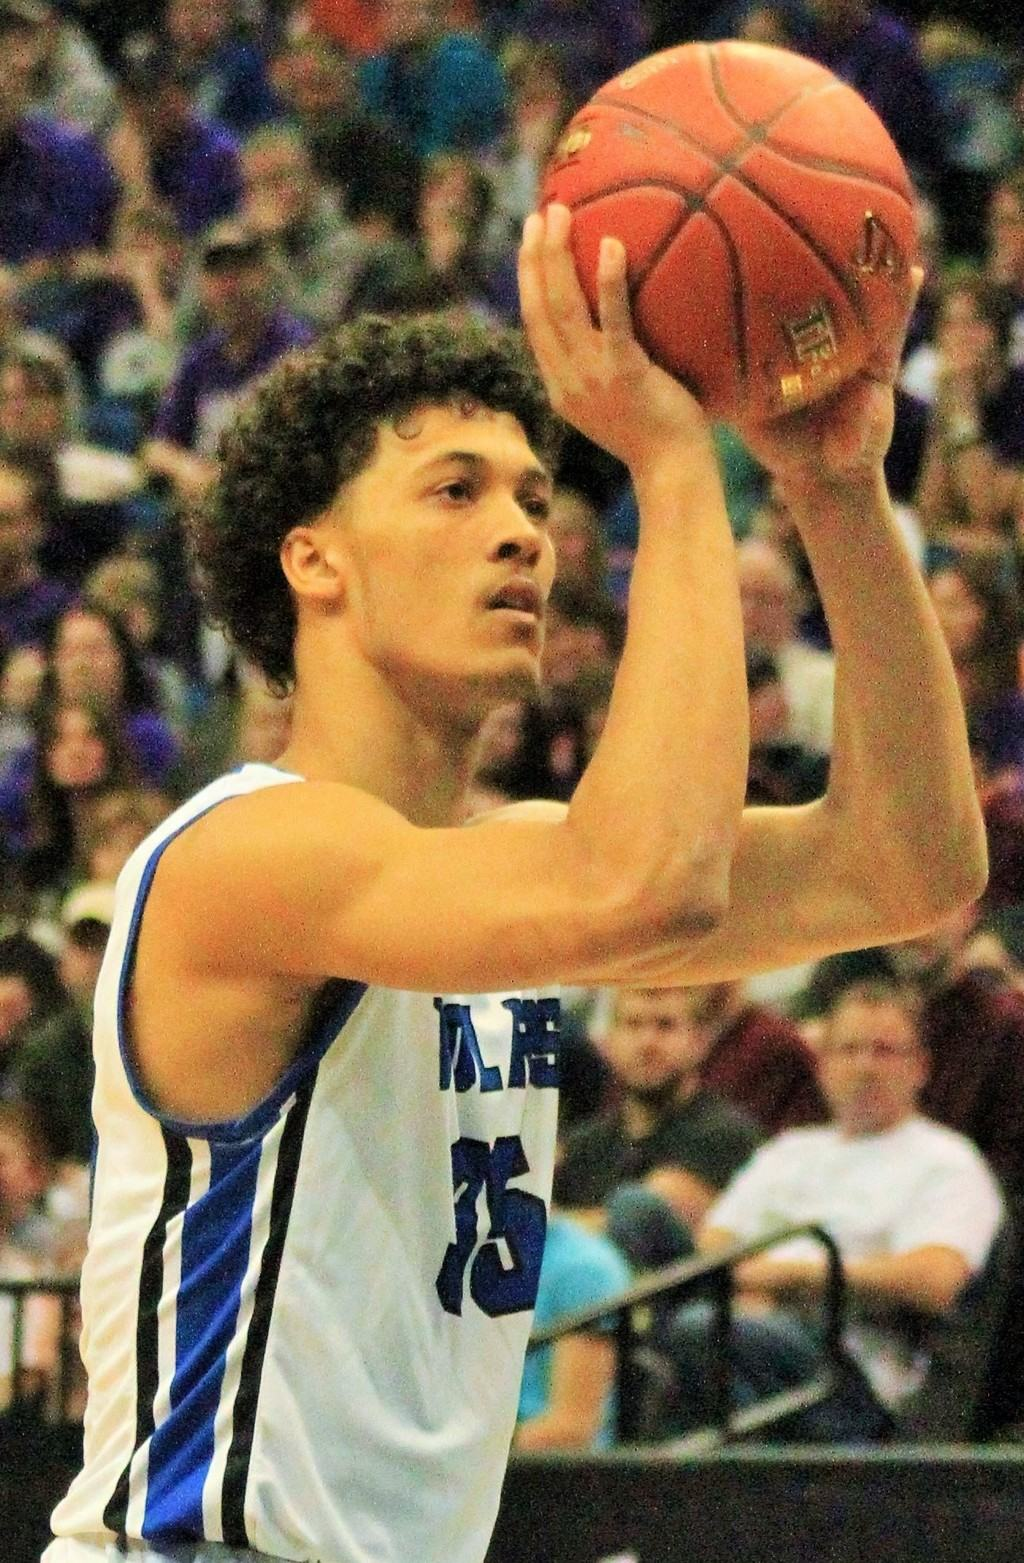 Isaac Johnson scored 18 points for Minneapolis North in the state Class A title game.